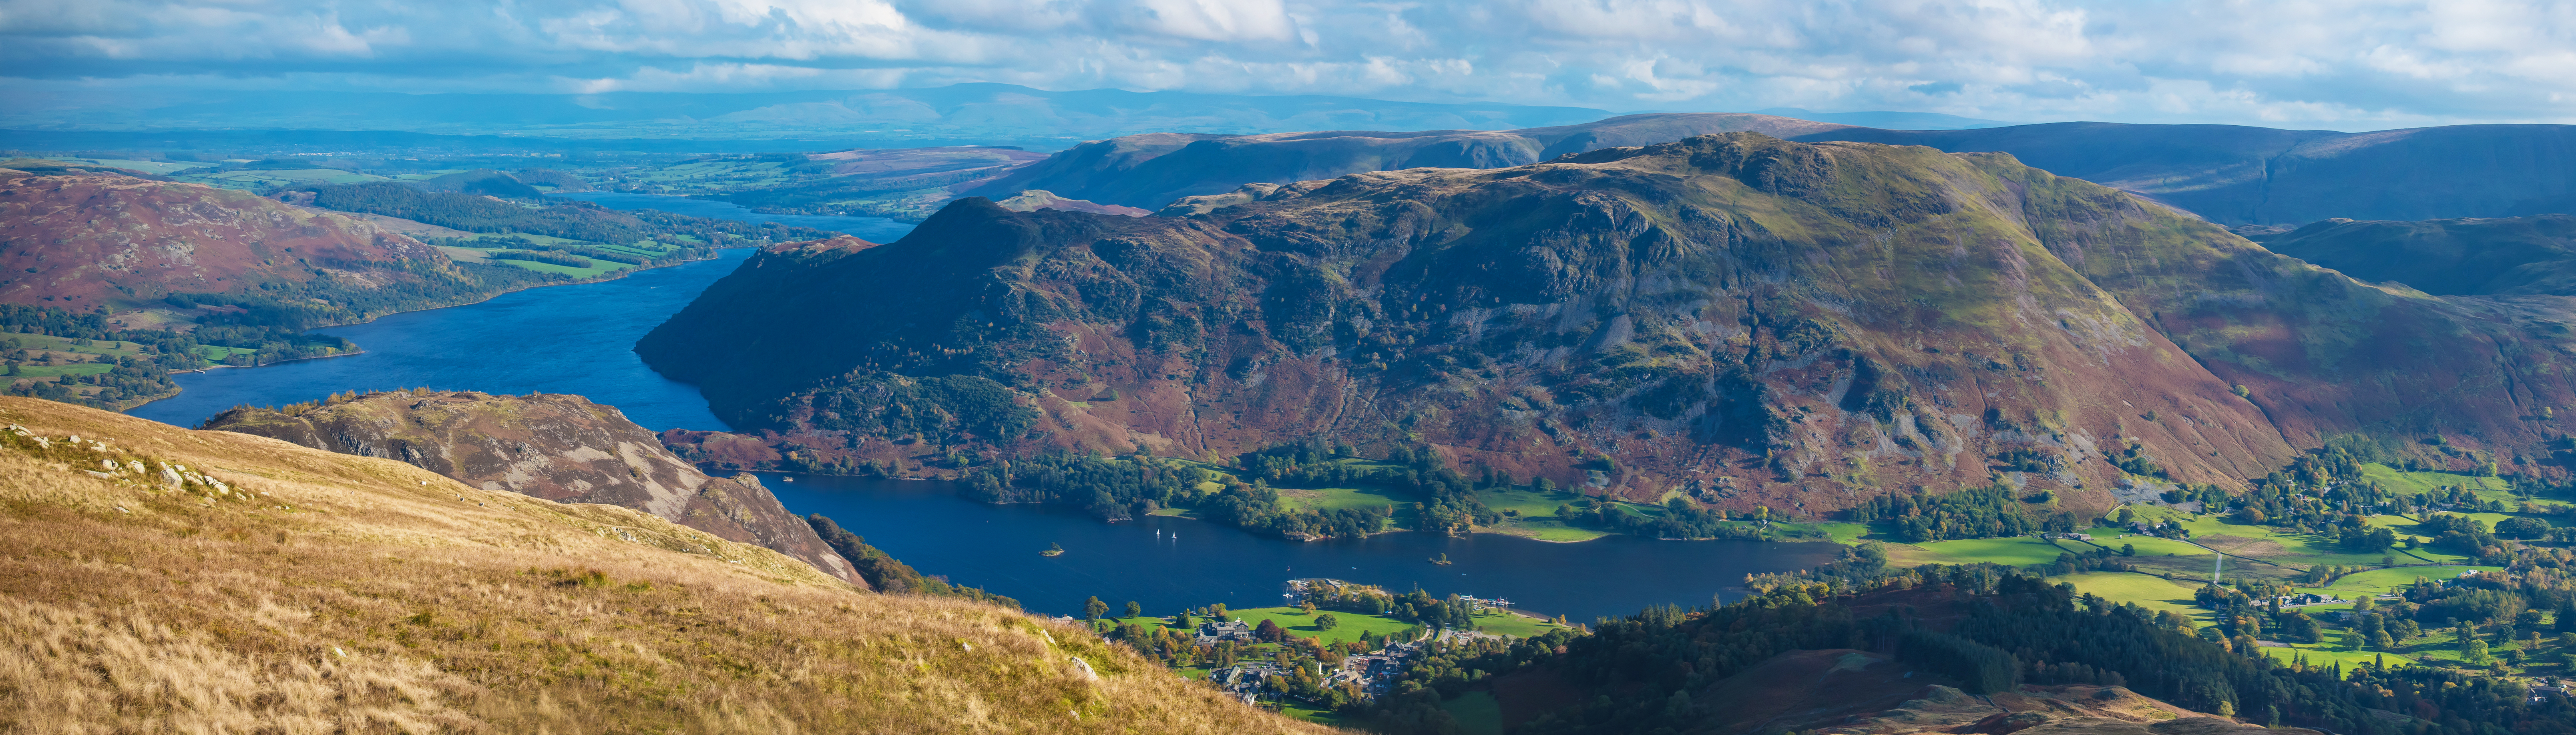 ullswater from the nab